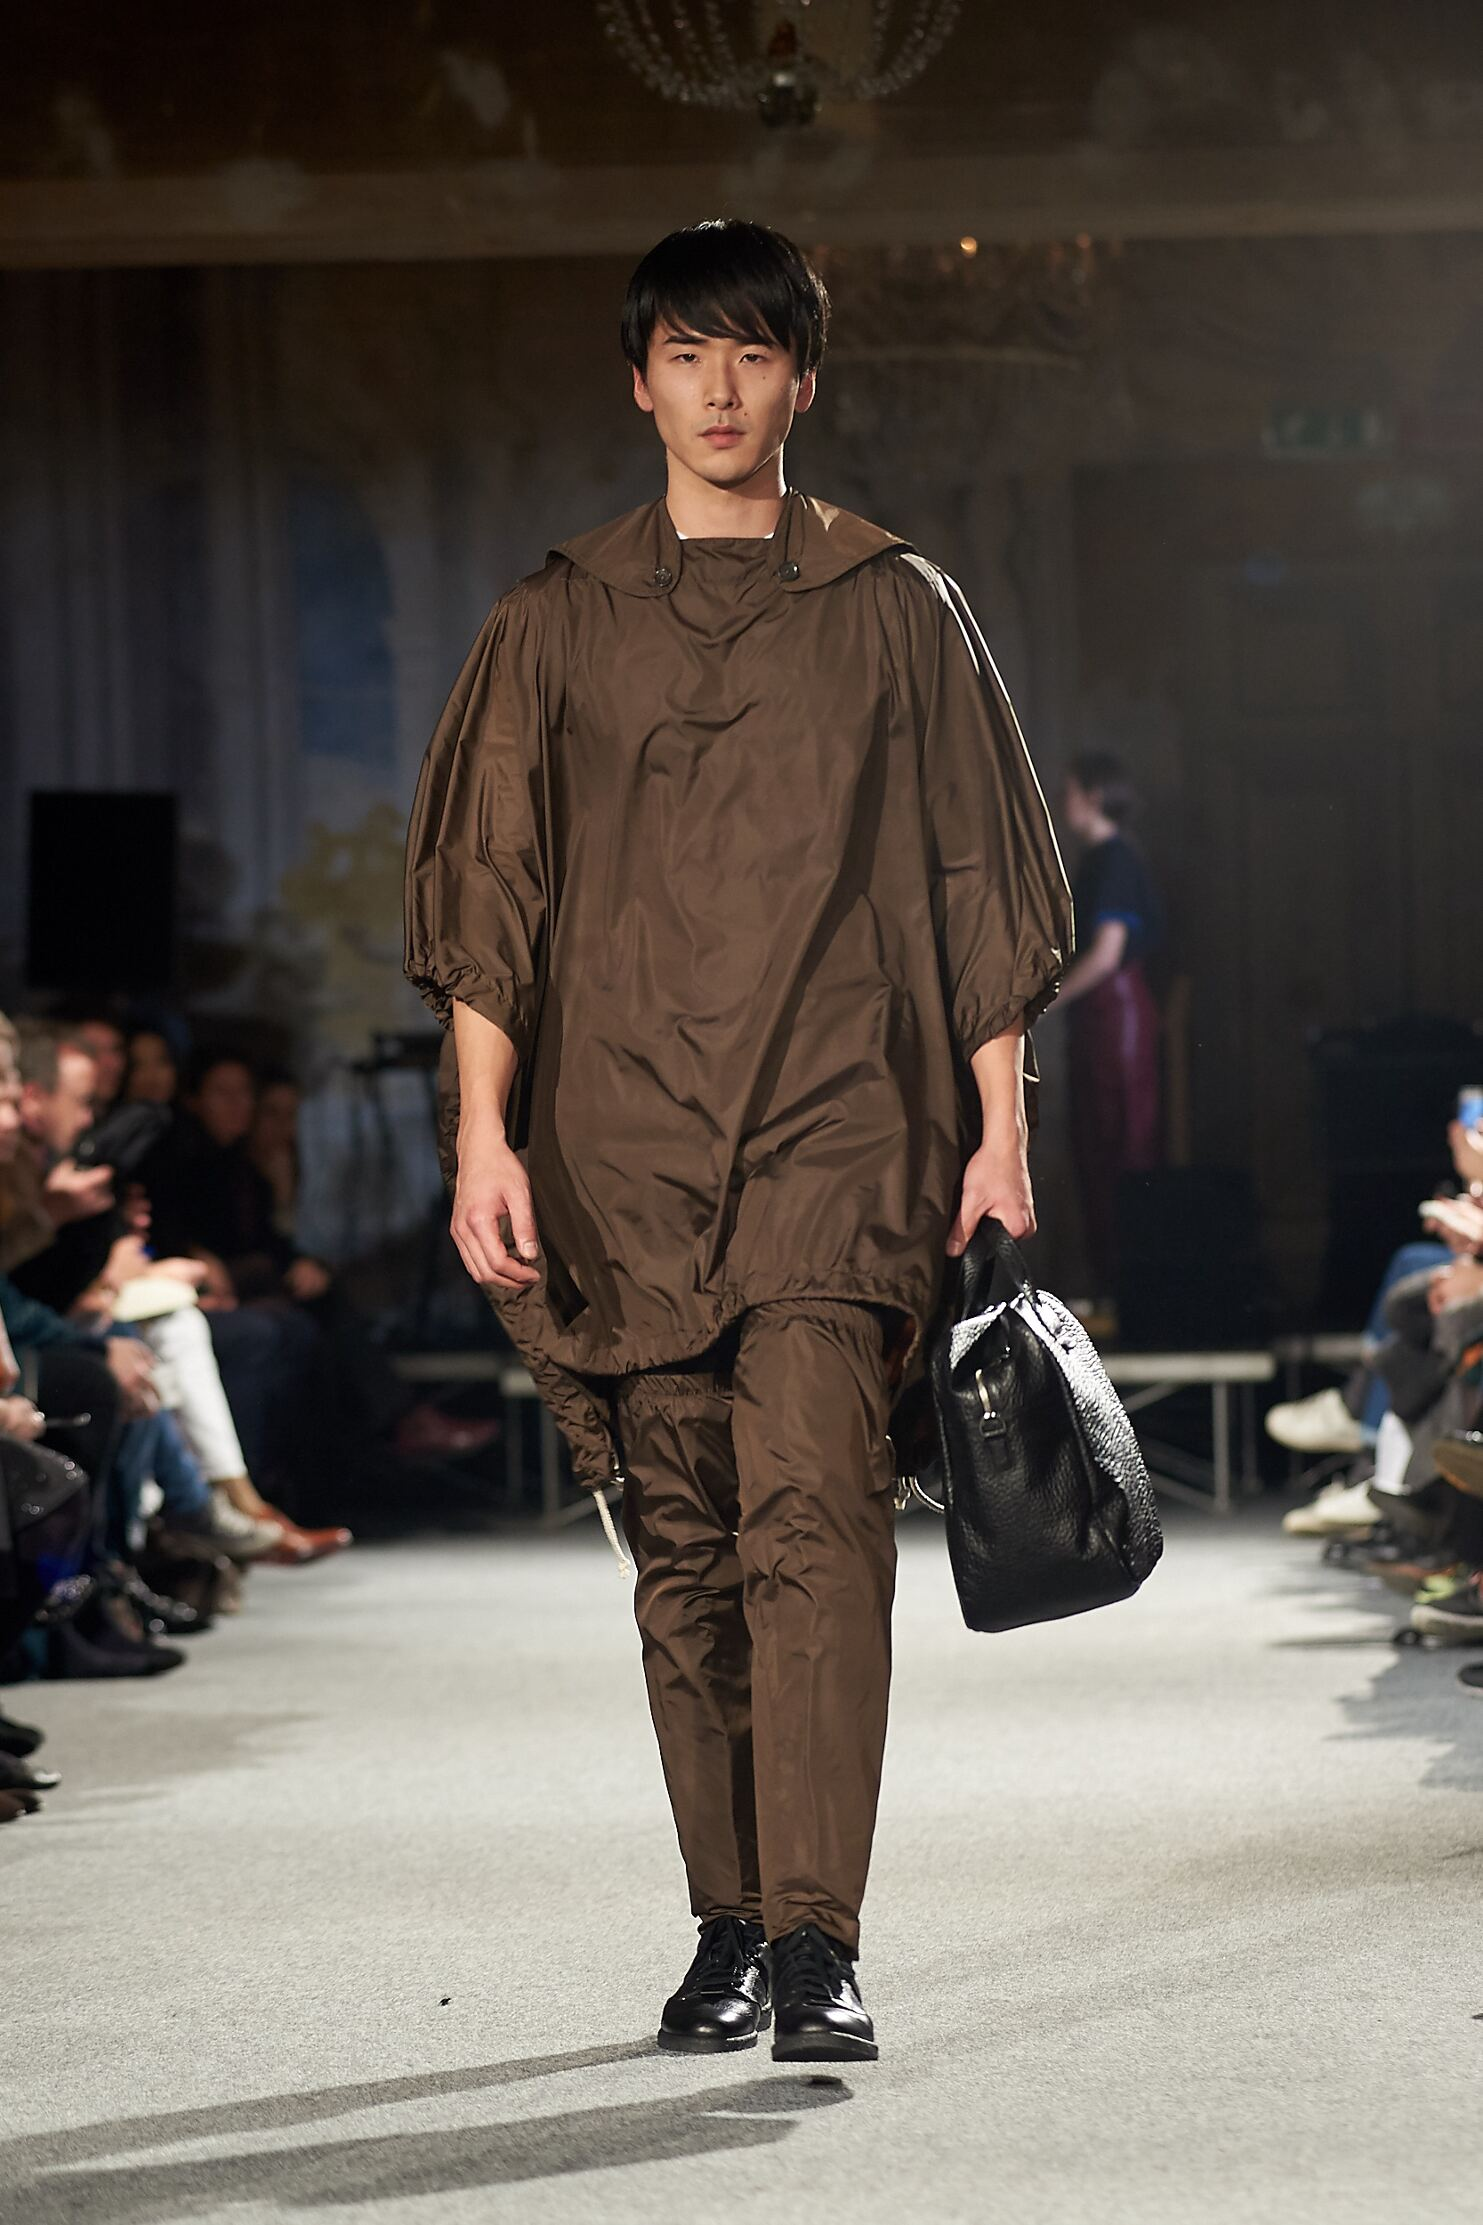 Andrea Incontri Fall 2015 Catwalk Menswear